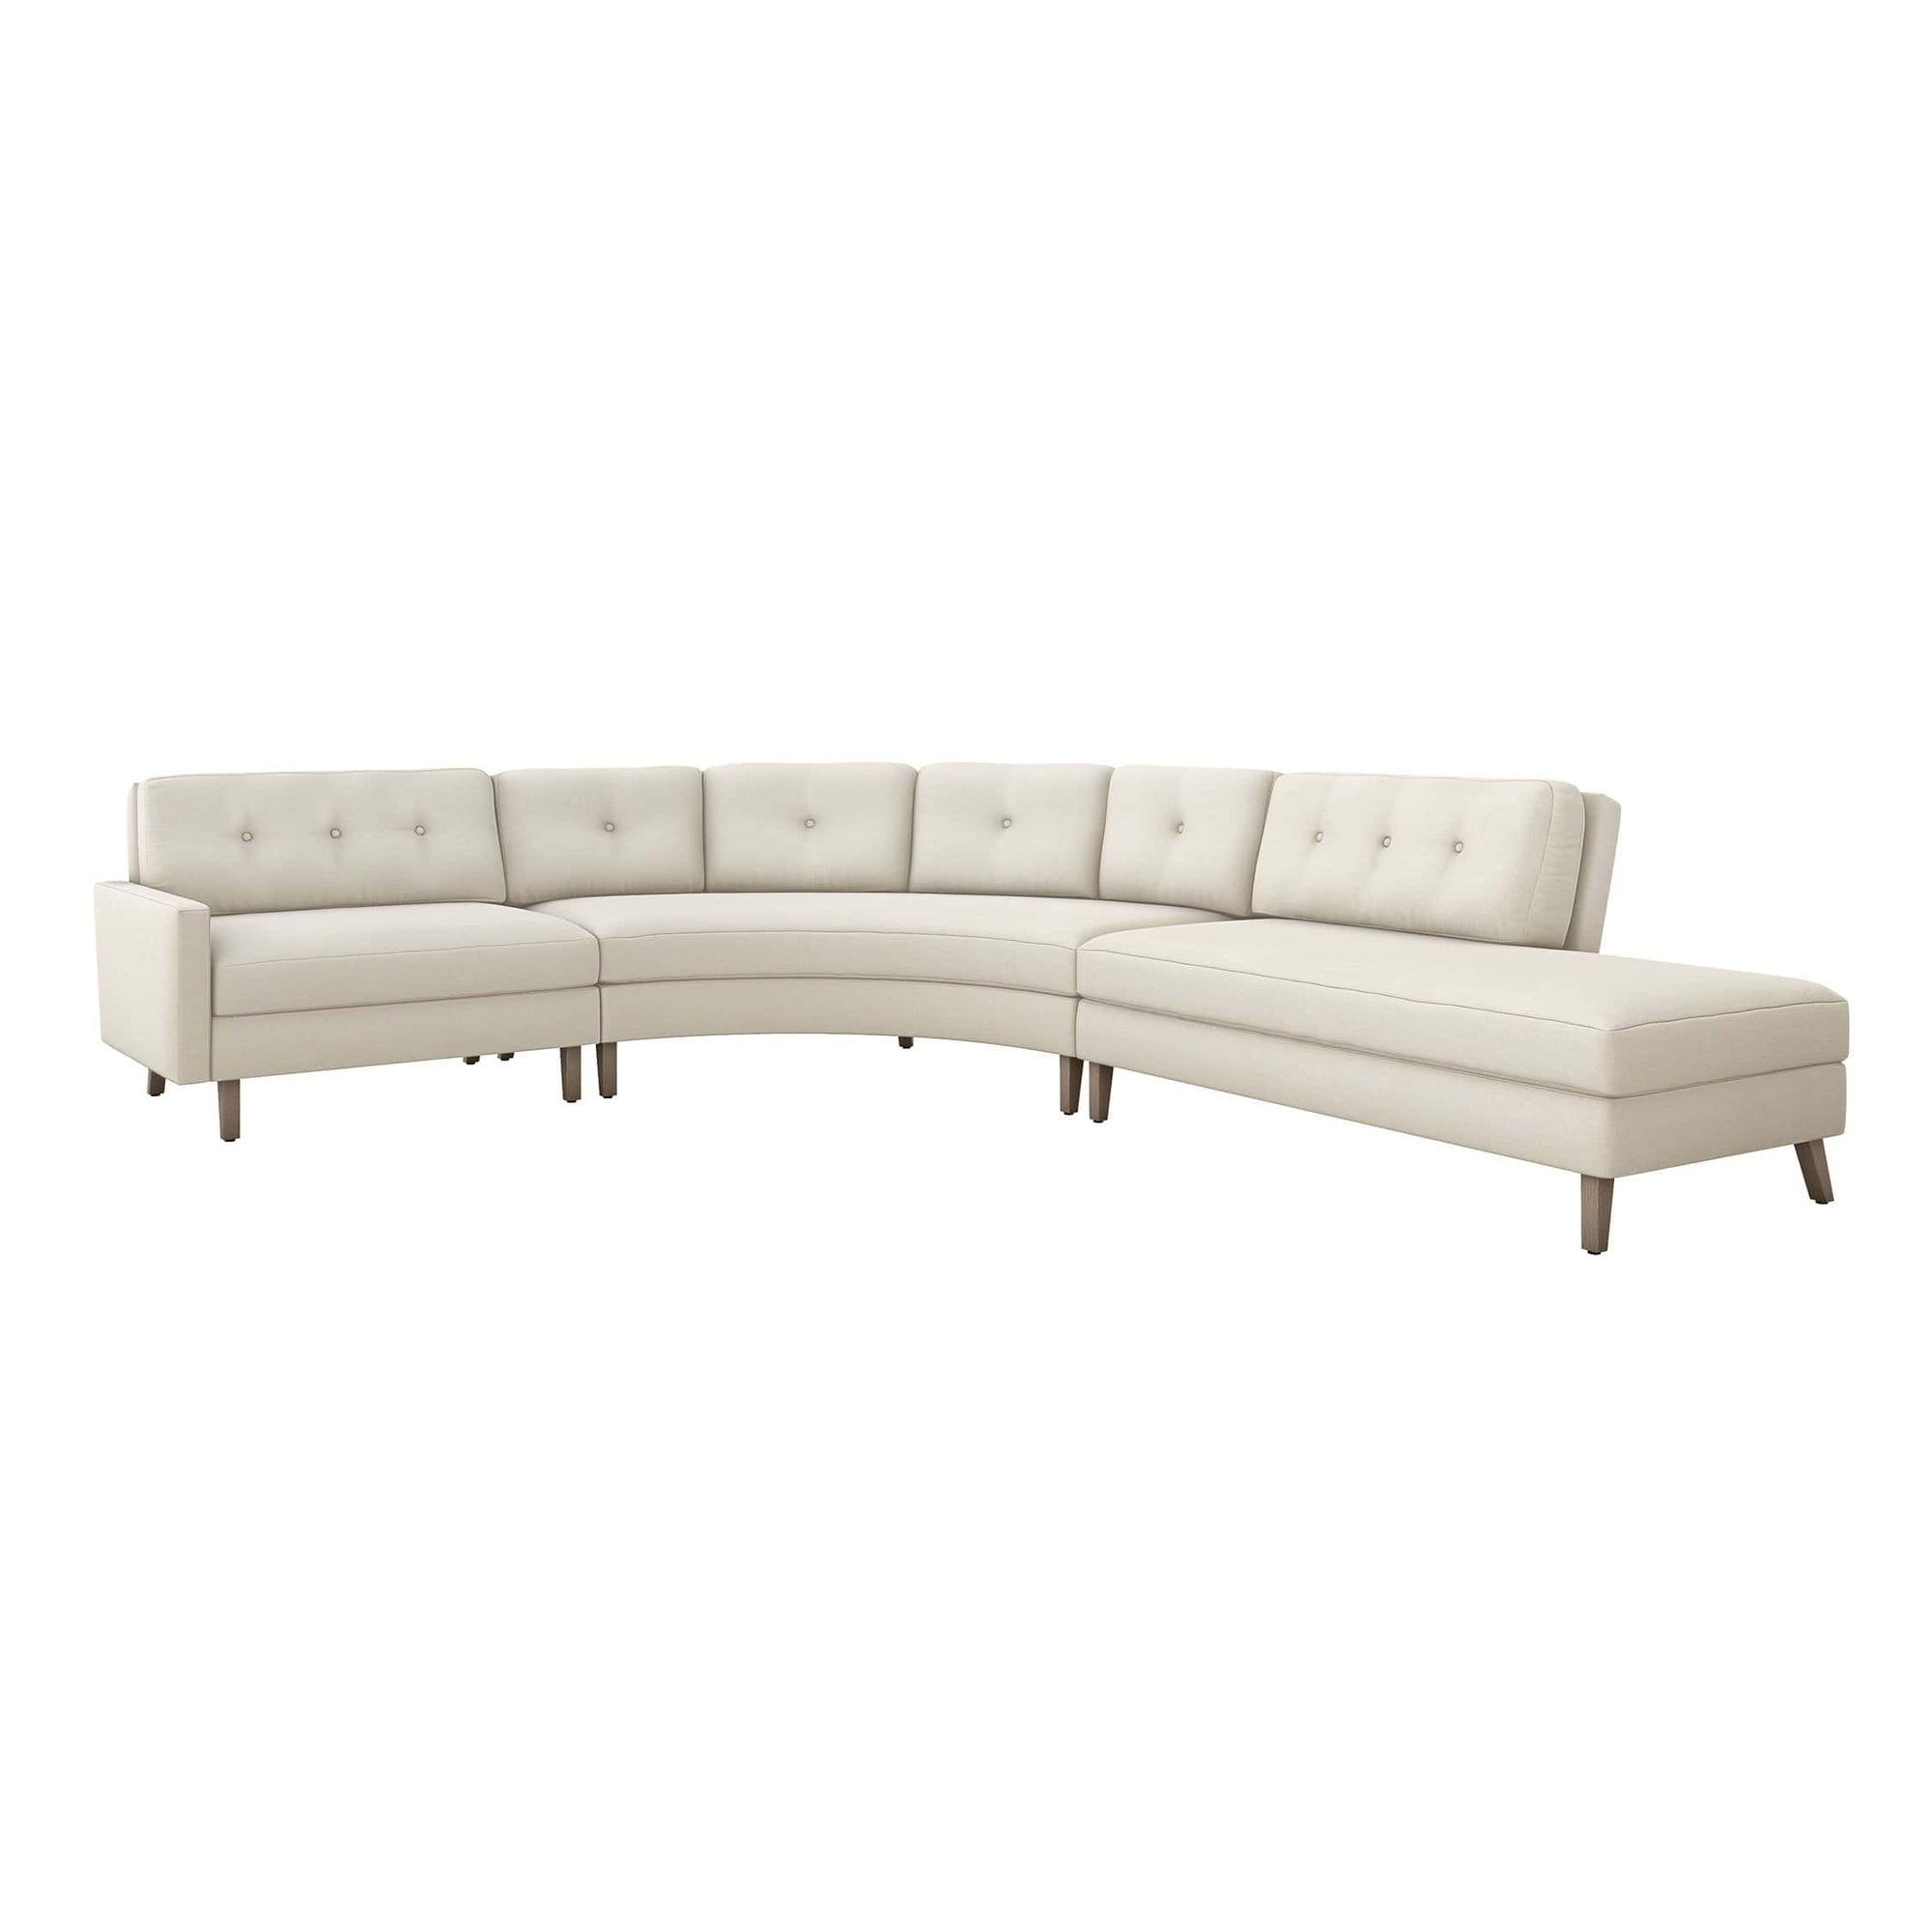 Interlude Home Interlude Home Aventura Right Chaise 3 Piece Sectional - Ivory 199021-1